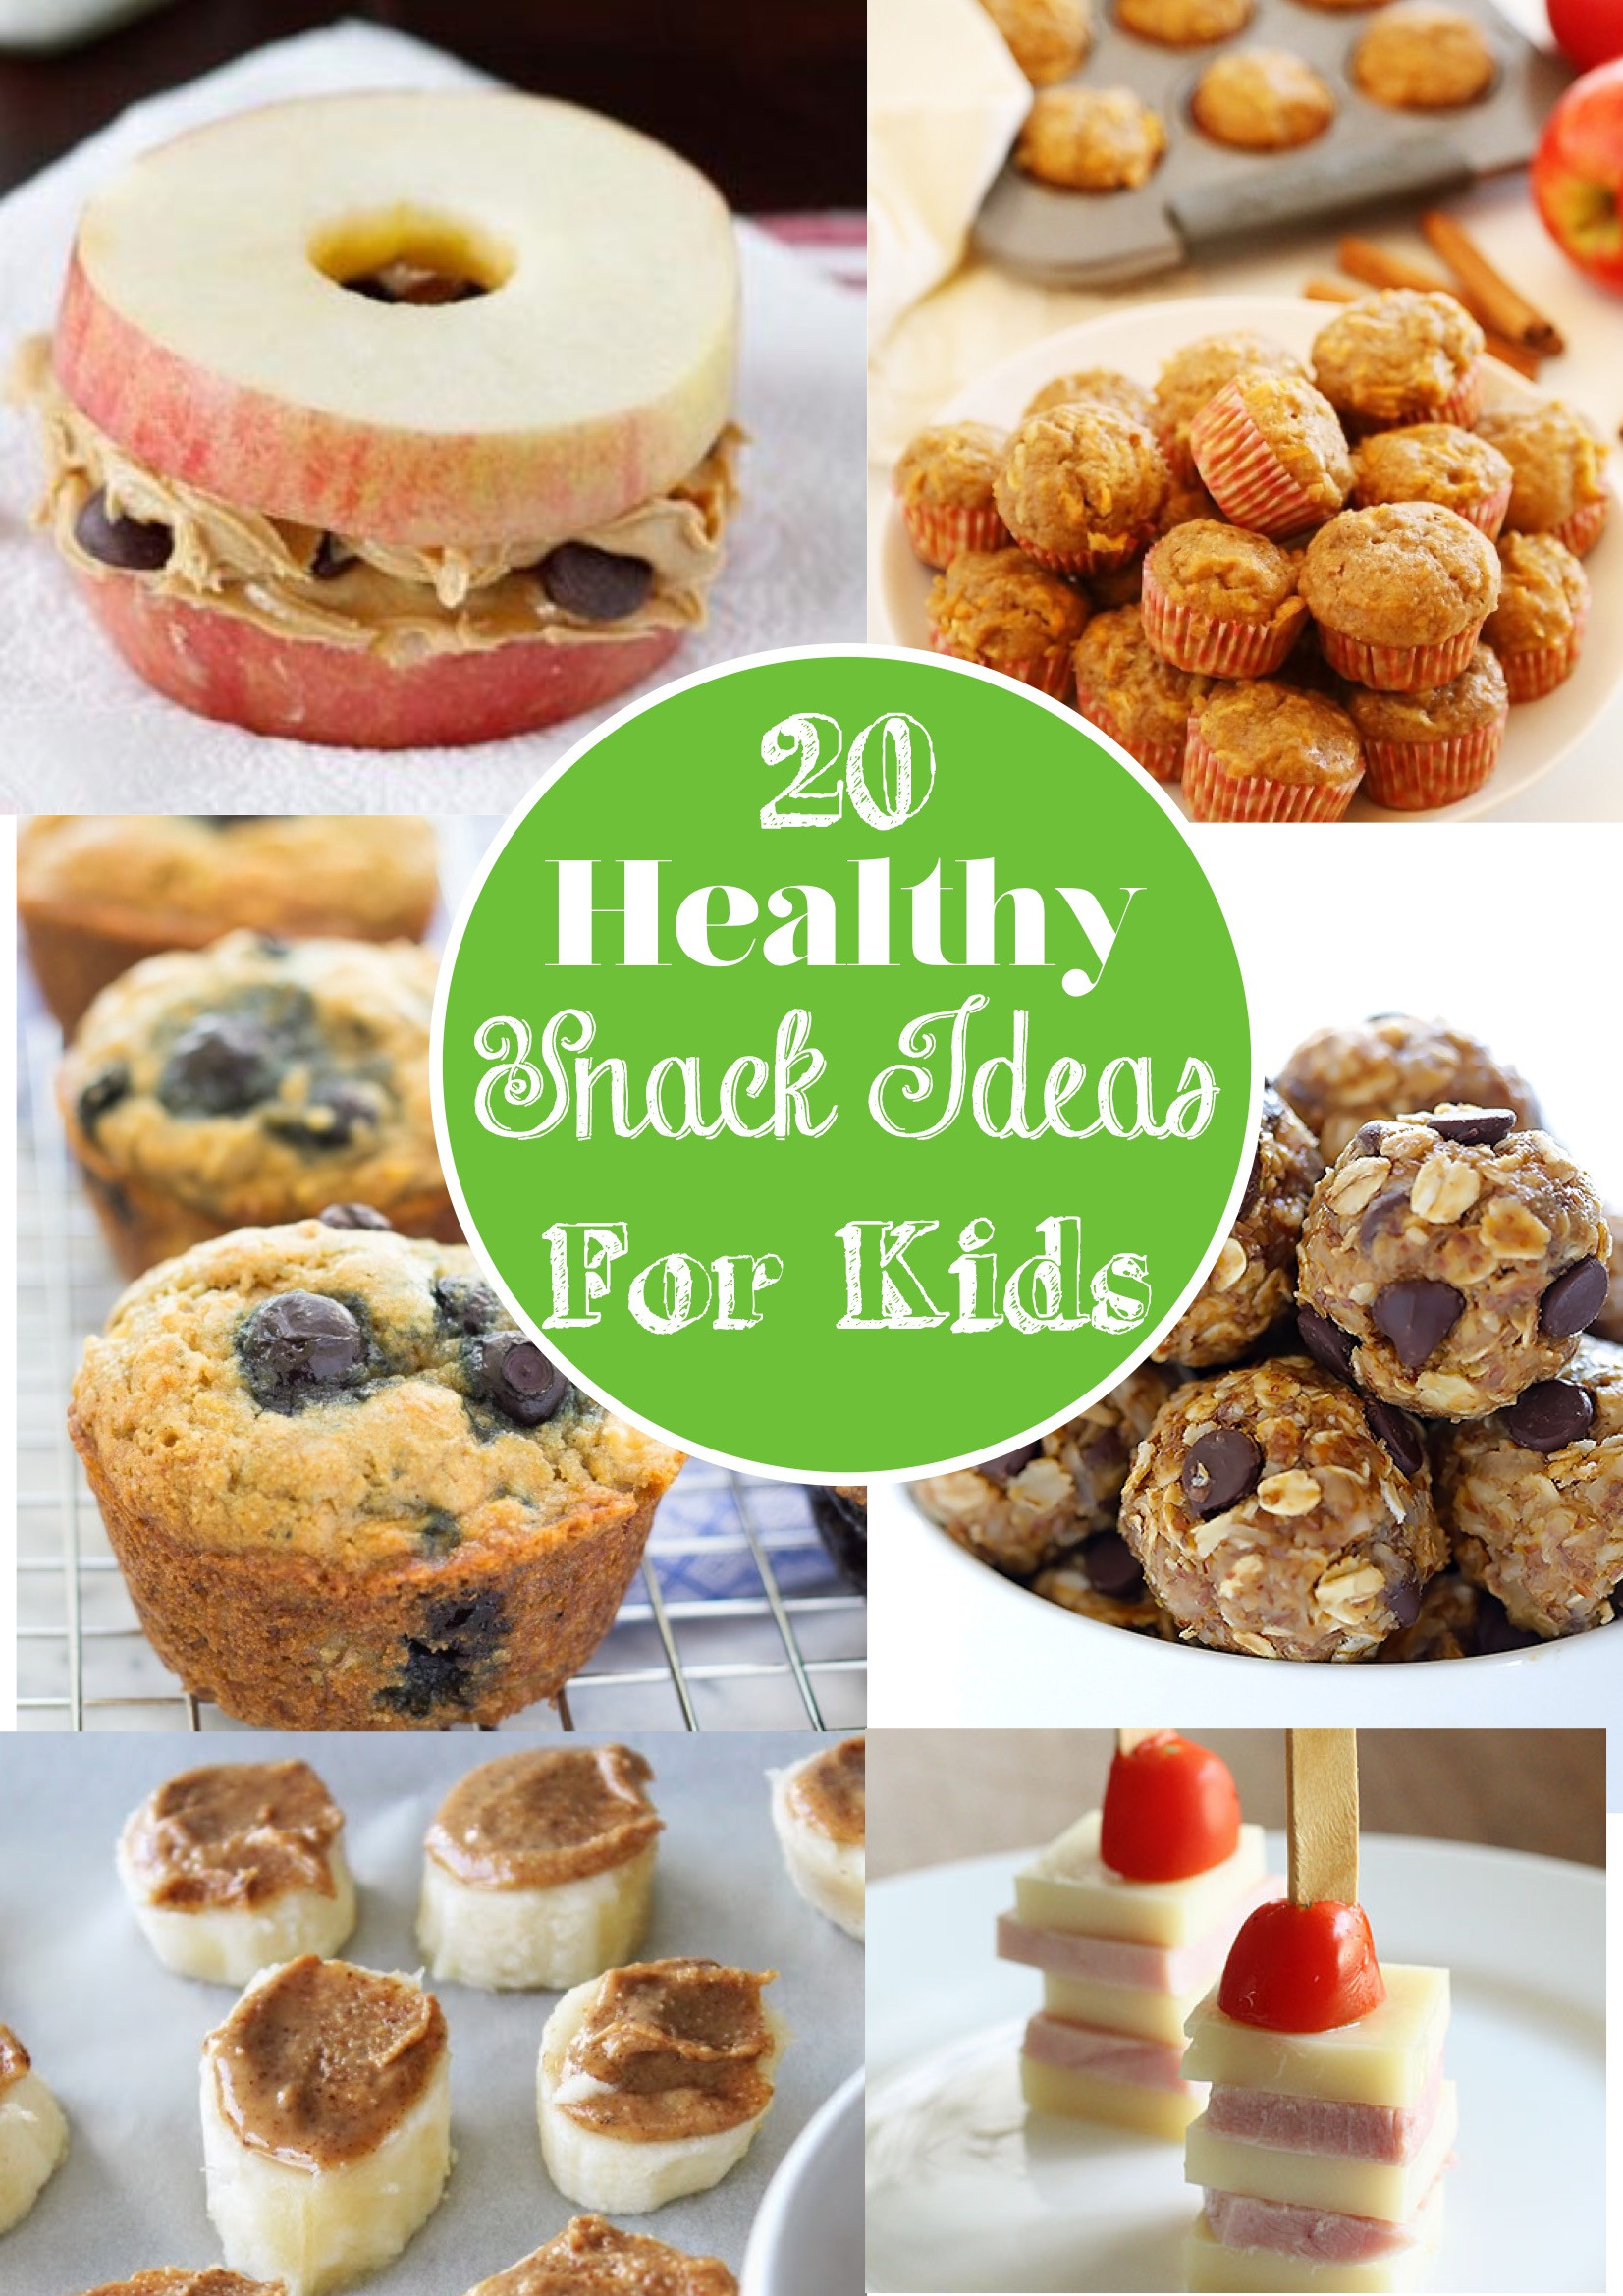 Healthy Homemade Snacks For Kids  20 Healthy Snack Ideas For Kids Snack Smart